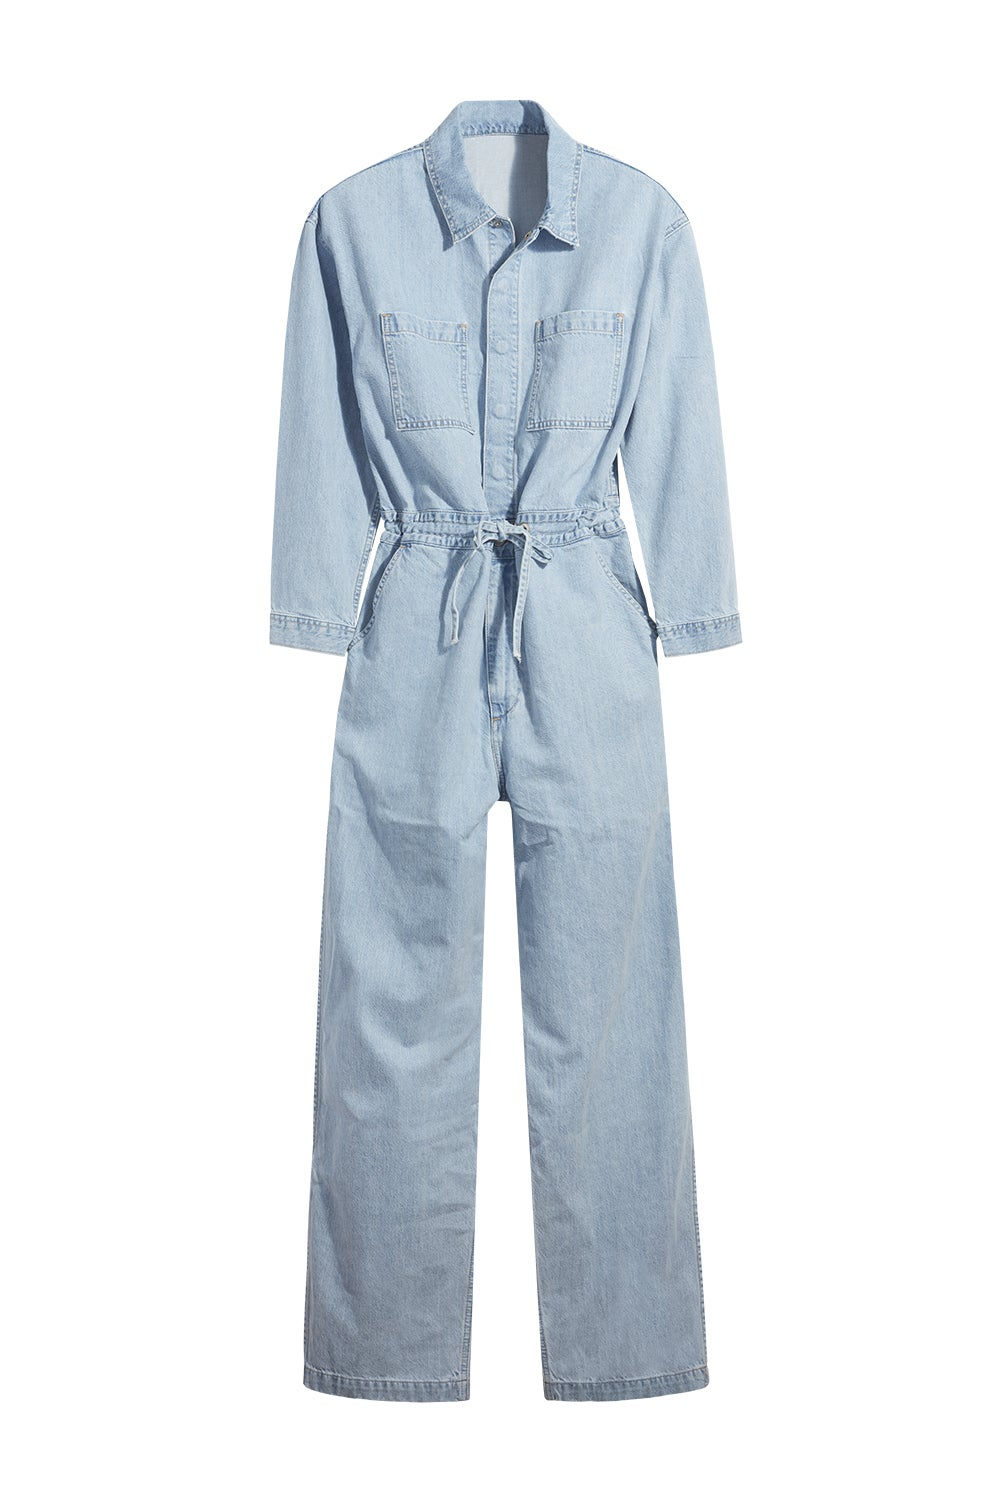 Levi's Roomy Jumpsuit In My Feels